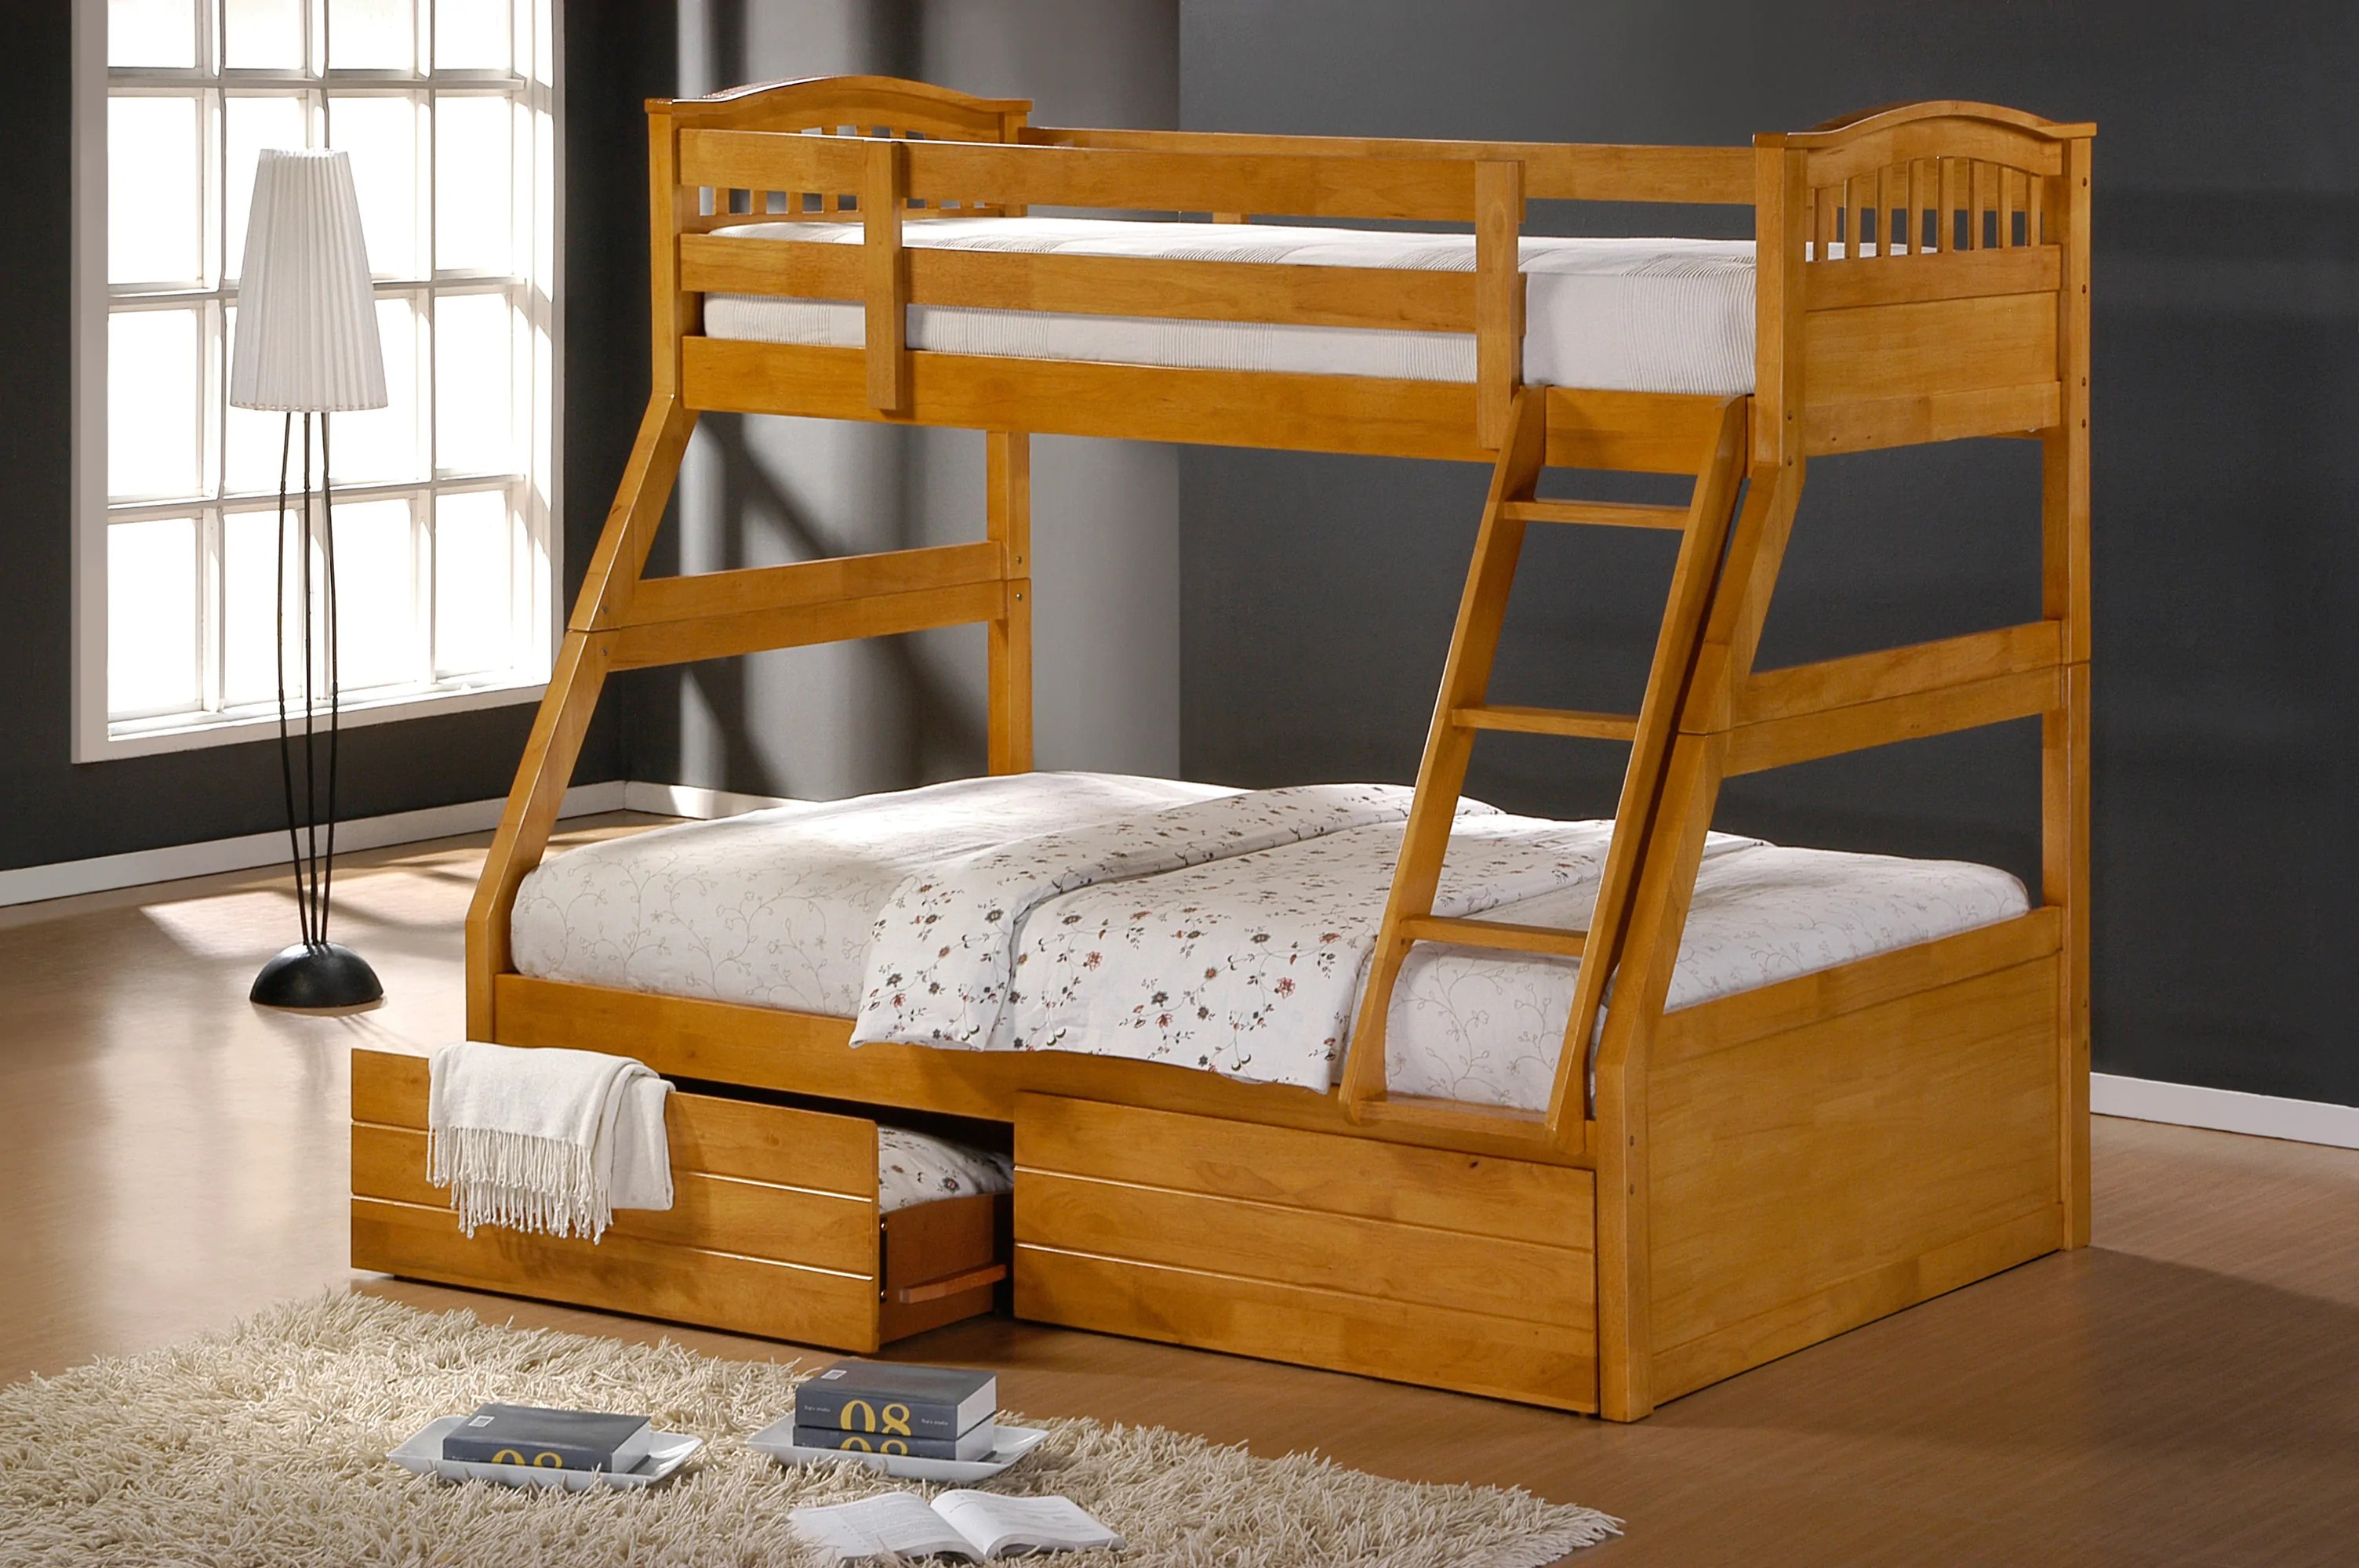 Single Beds For Sale Ashley Maple Duo Double Single Bunk Beds With Drawers